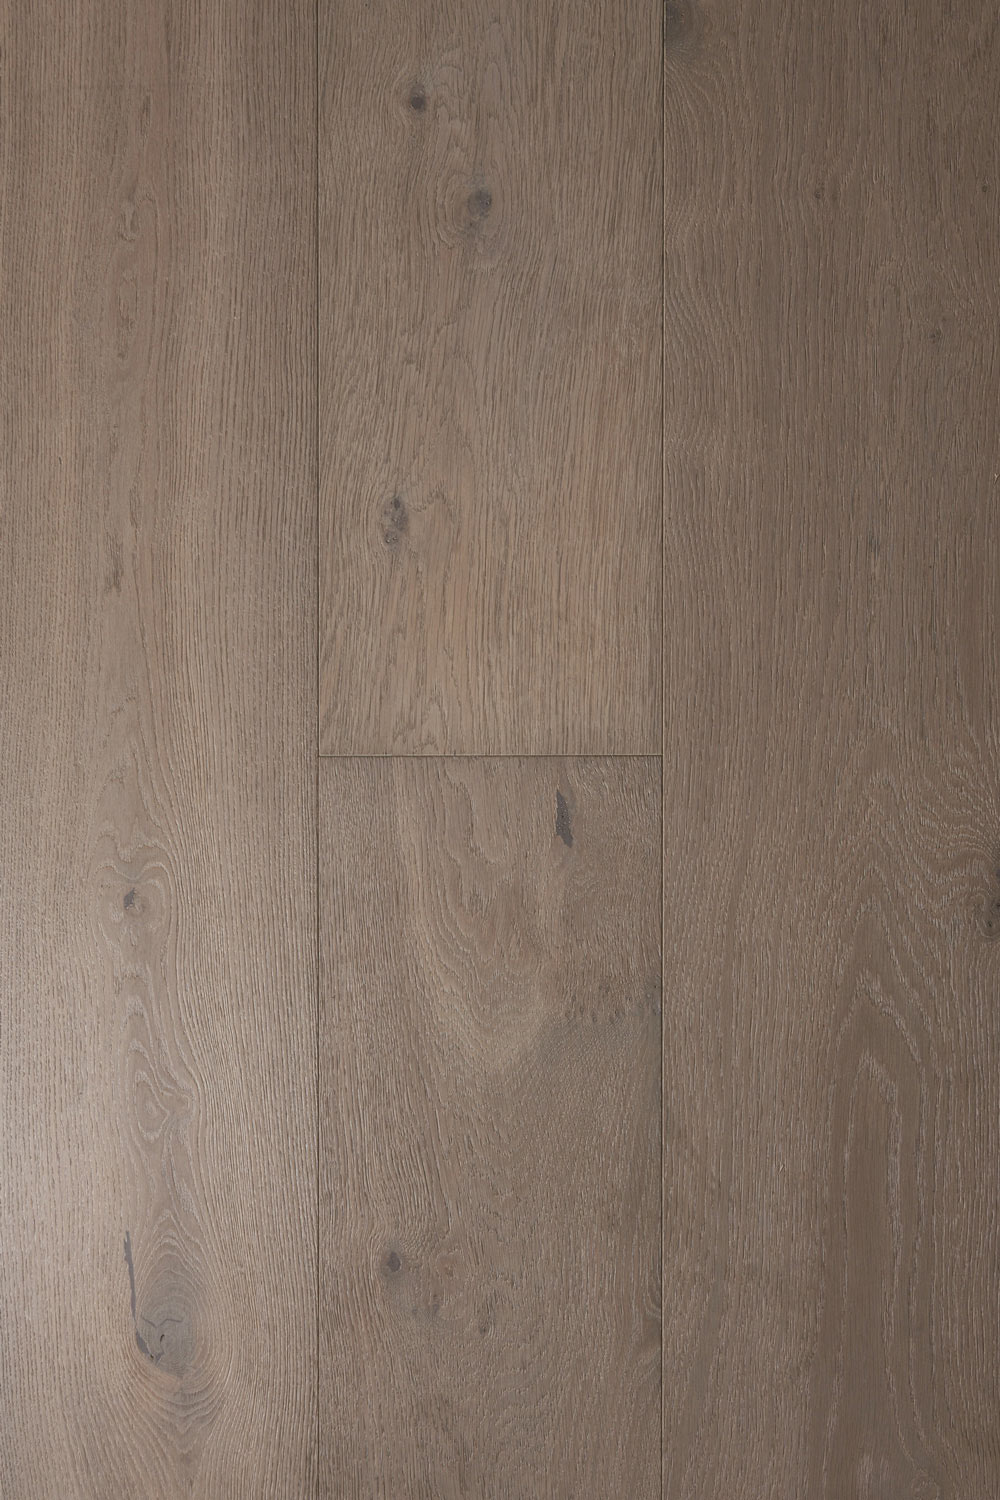 UV Lacquer Ossola 5/8 in. Thick x 10-1/4 in. Wide x Varying Length Floating Engineered European Oak Hardwood Flooring (24.63 sq. ft. / box) - 810001960230